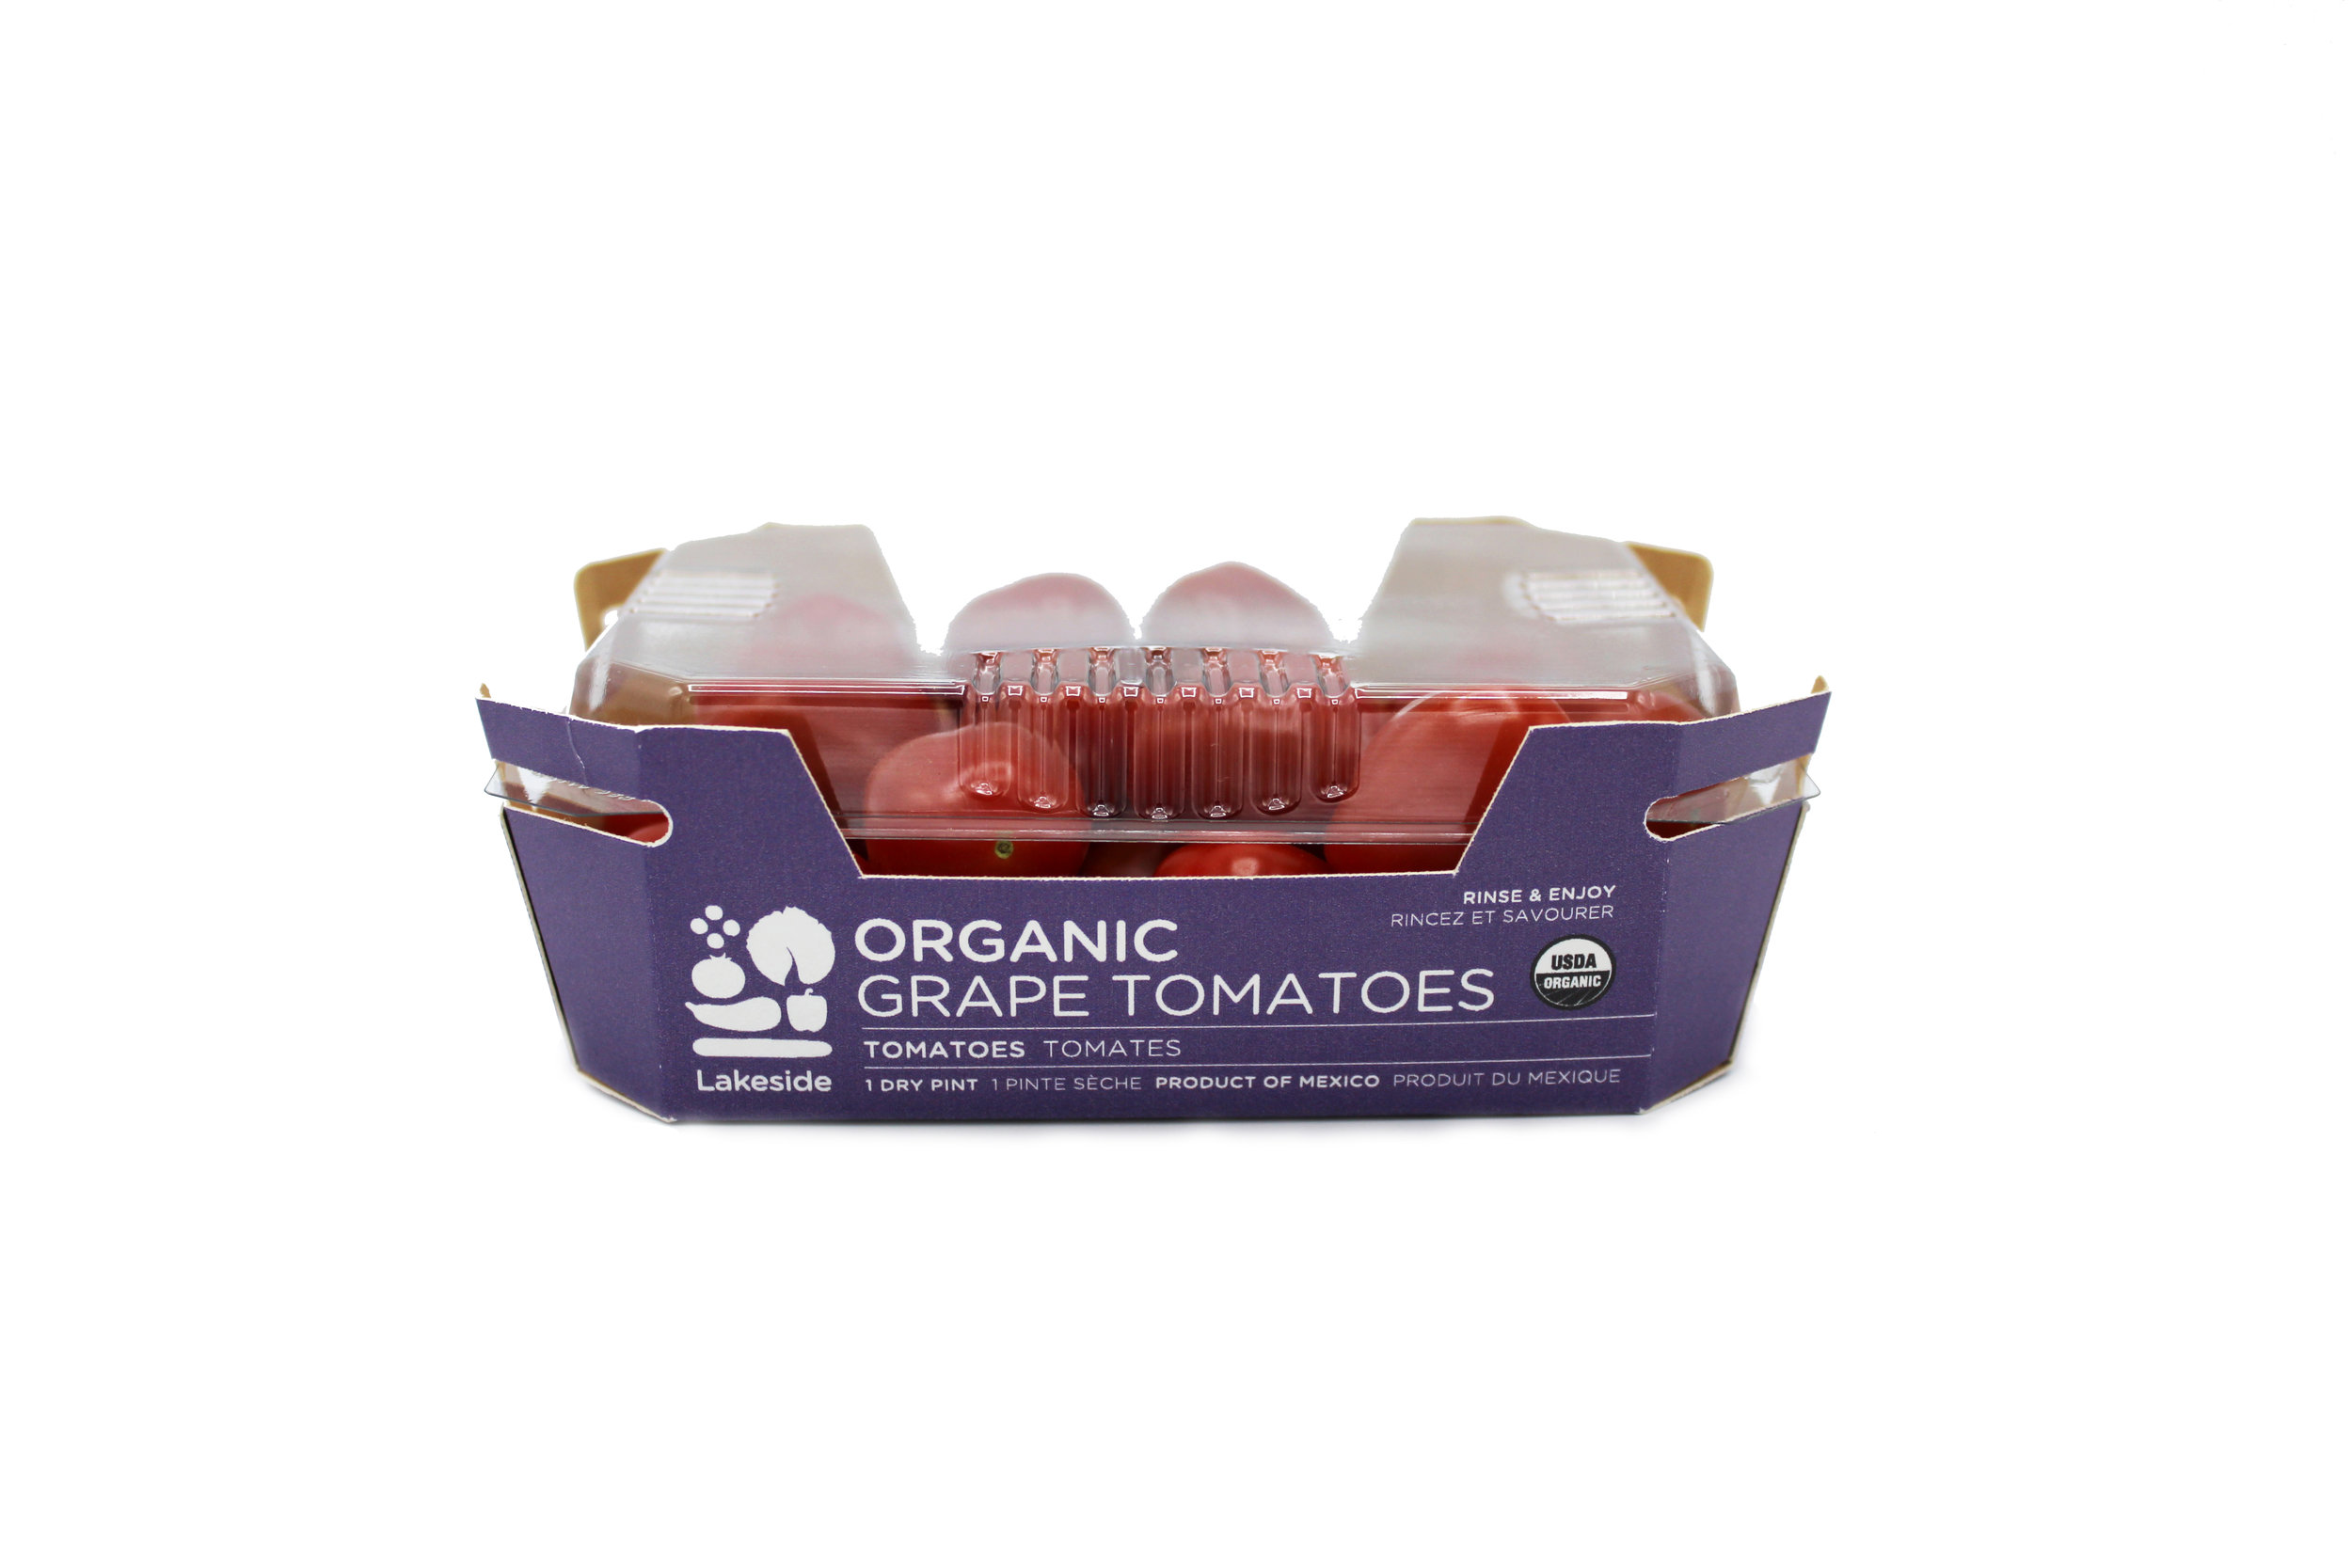 ORGANIC GRAPES - 1 PINT TRAY CARDBOARD.jpg